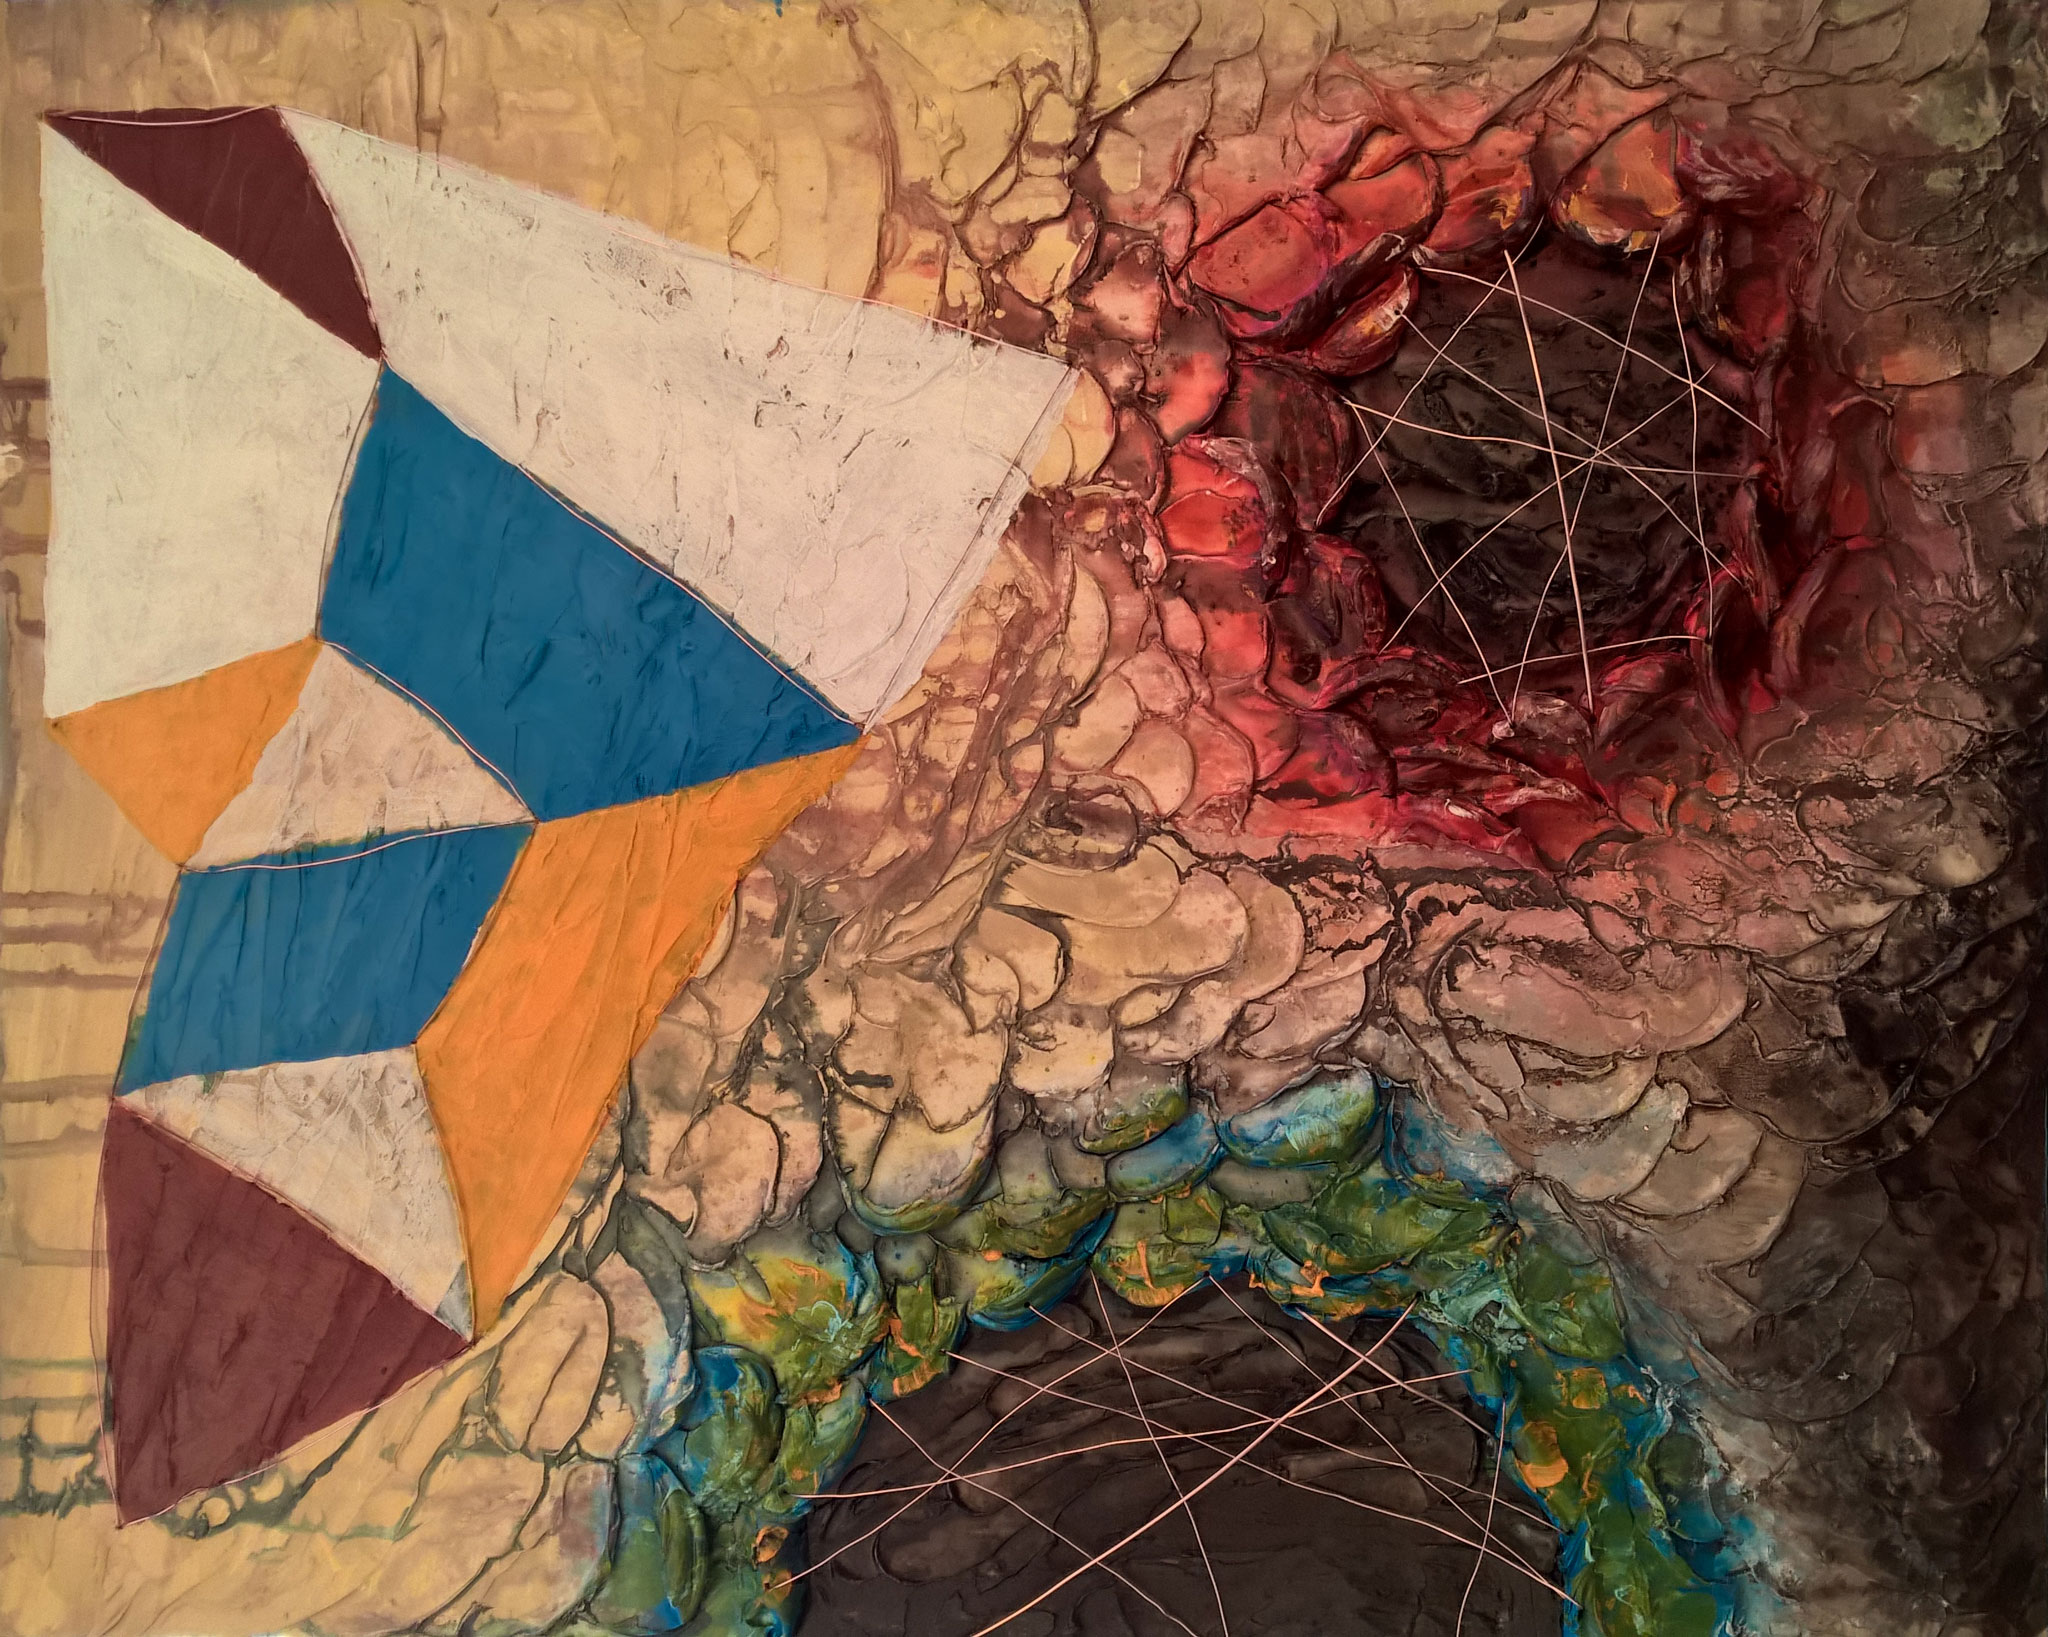 """'Craters and Constellations' 20""""W x  16  """"H x  1.5""""D by Lauren Hodges"""